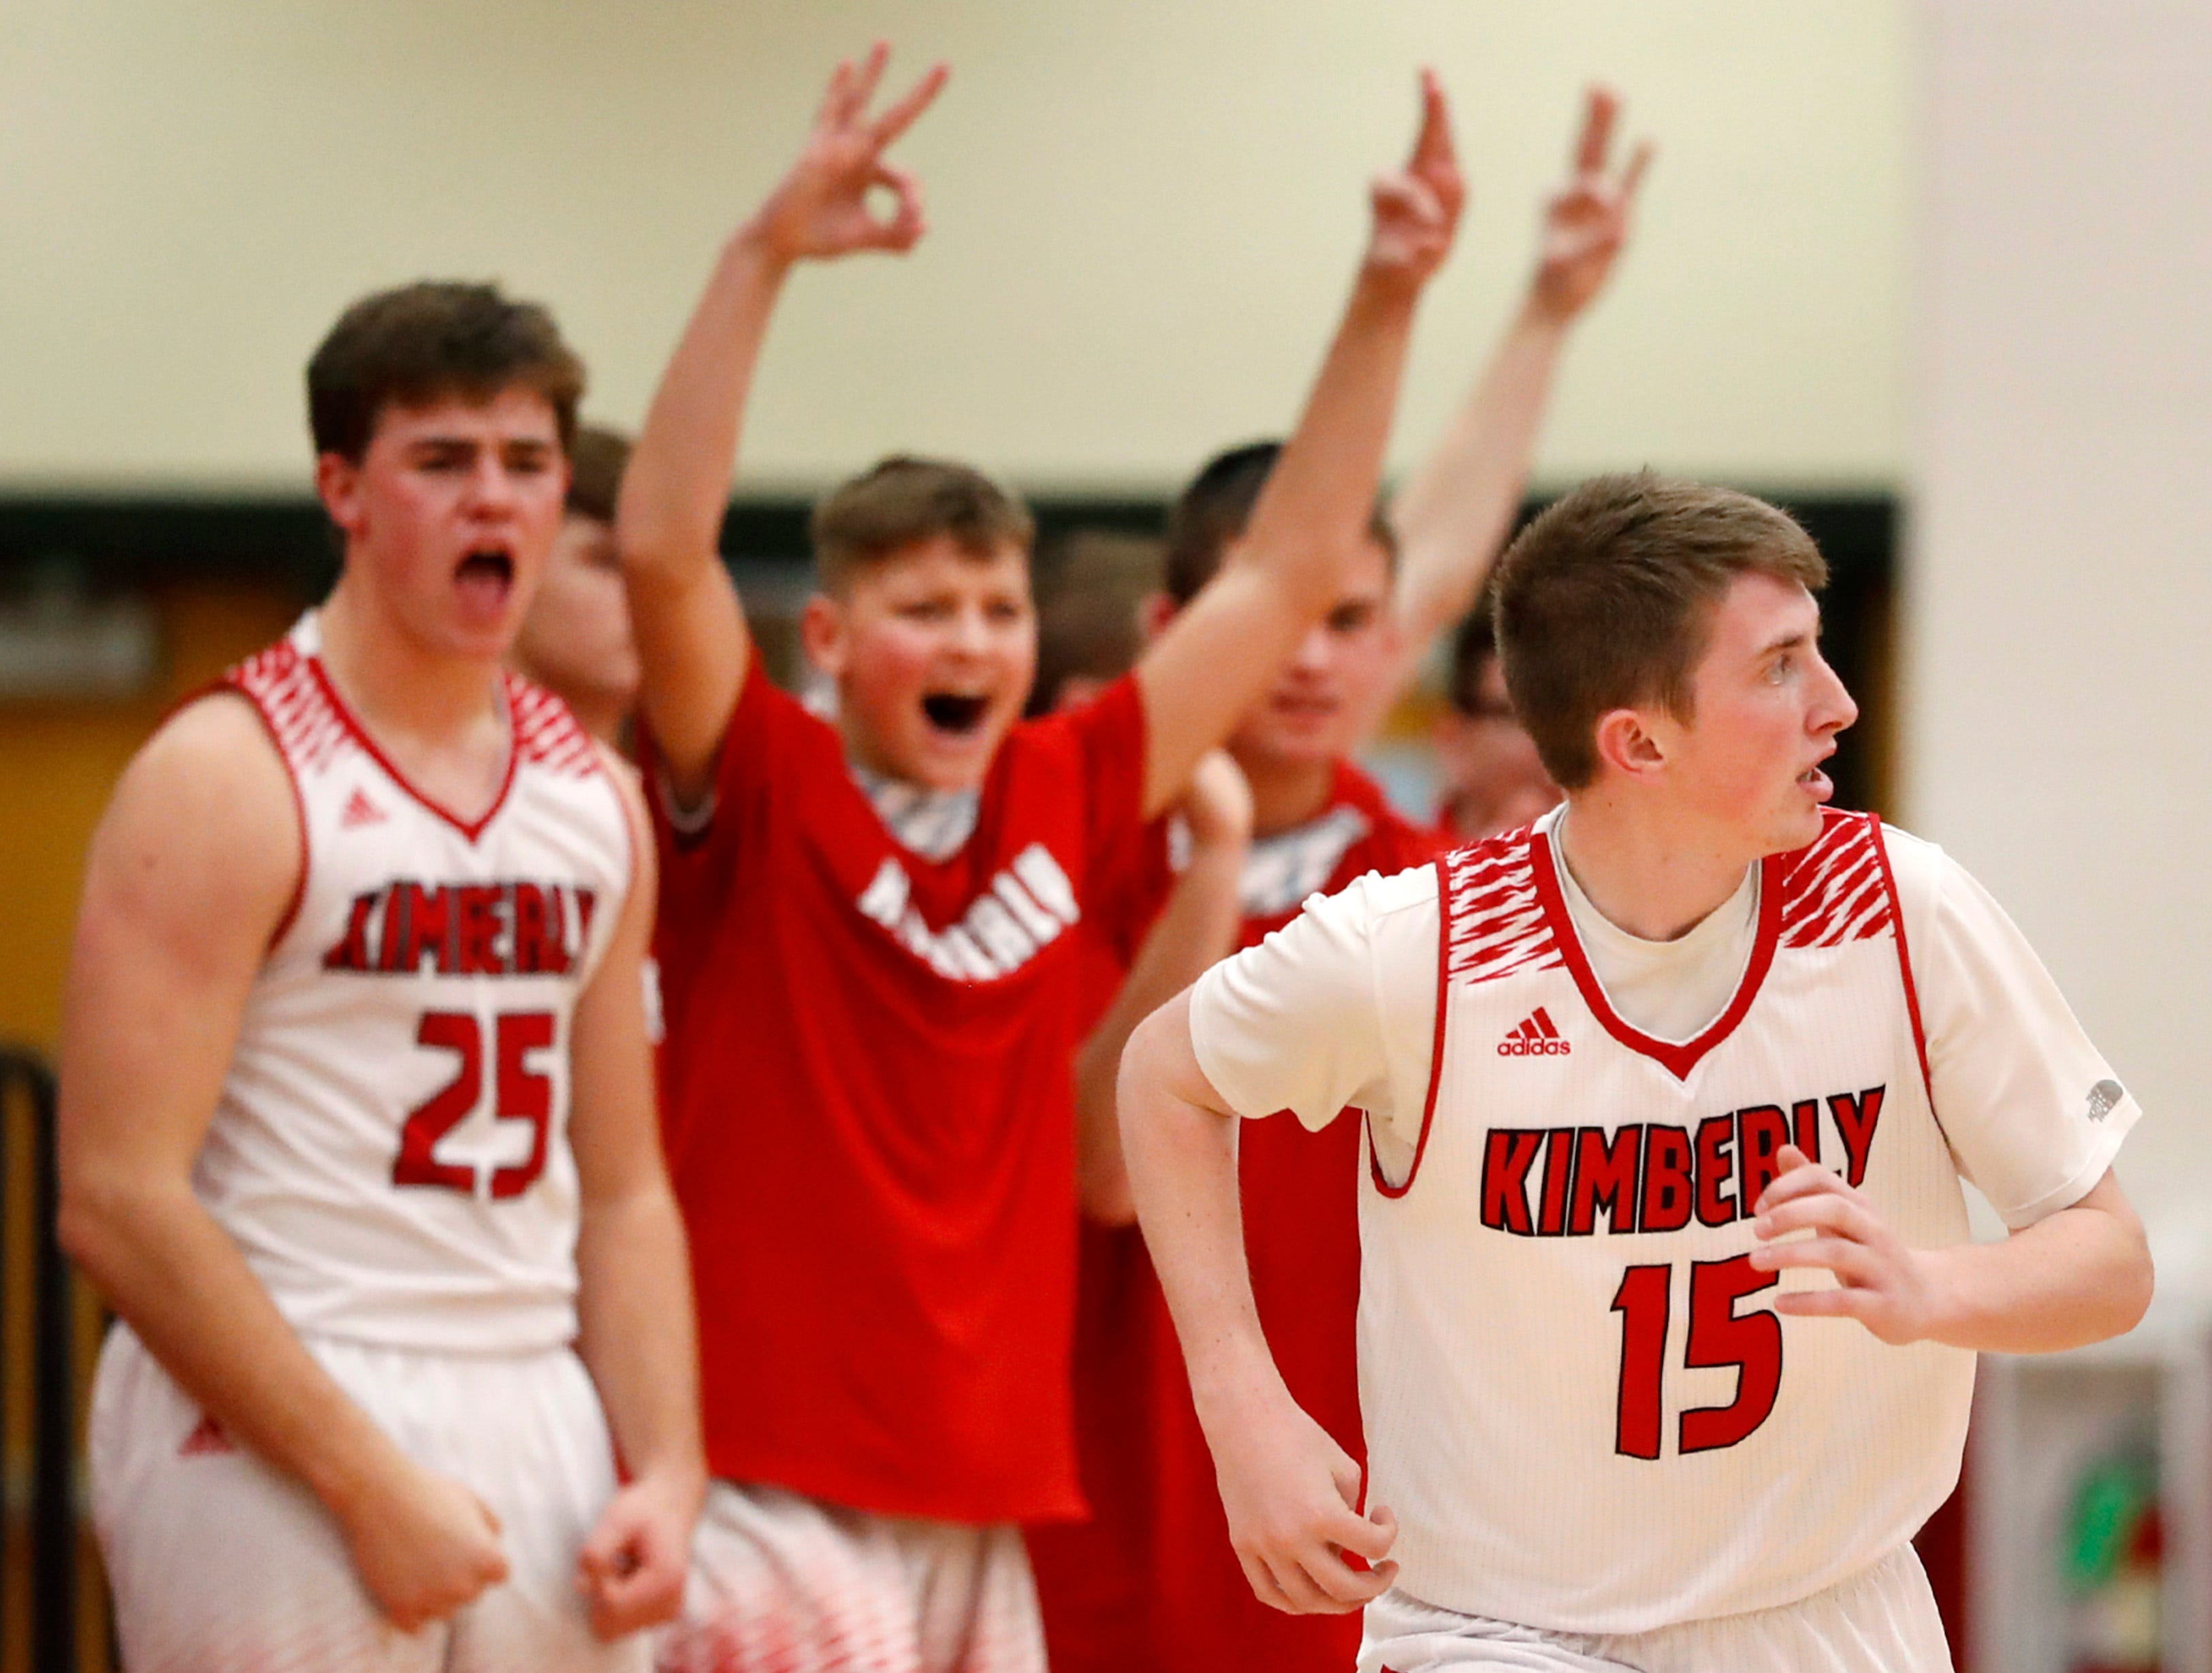 Teammates celebrate a three-point basket by Kimberly High School's Charlie Jacobson during their game against Kaukauna High School Friday, Dec. 7, 2018, in Kimberly, Wis.